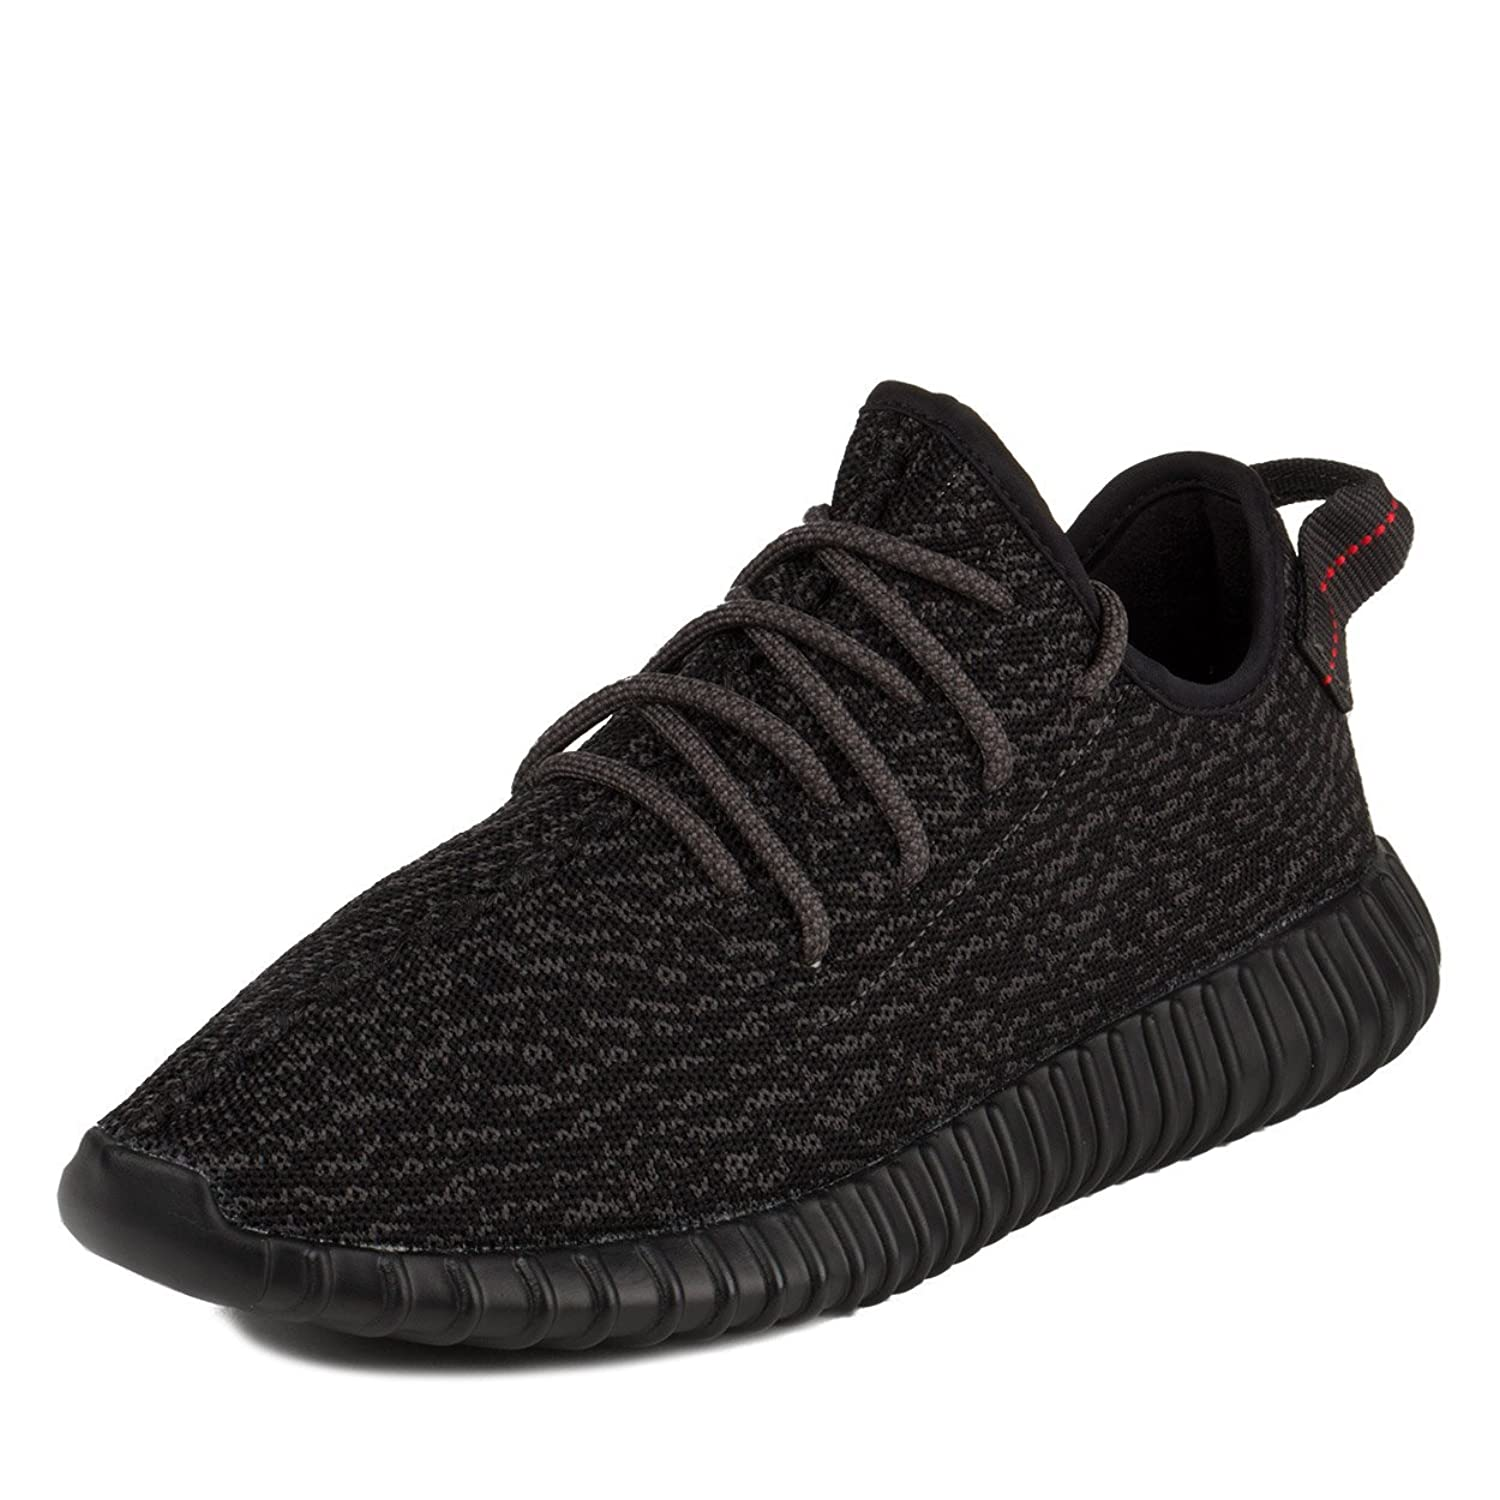 YEEZY BOOST 350 \u0027PIRATE BLACK\u0027 -AQ2659